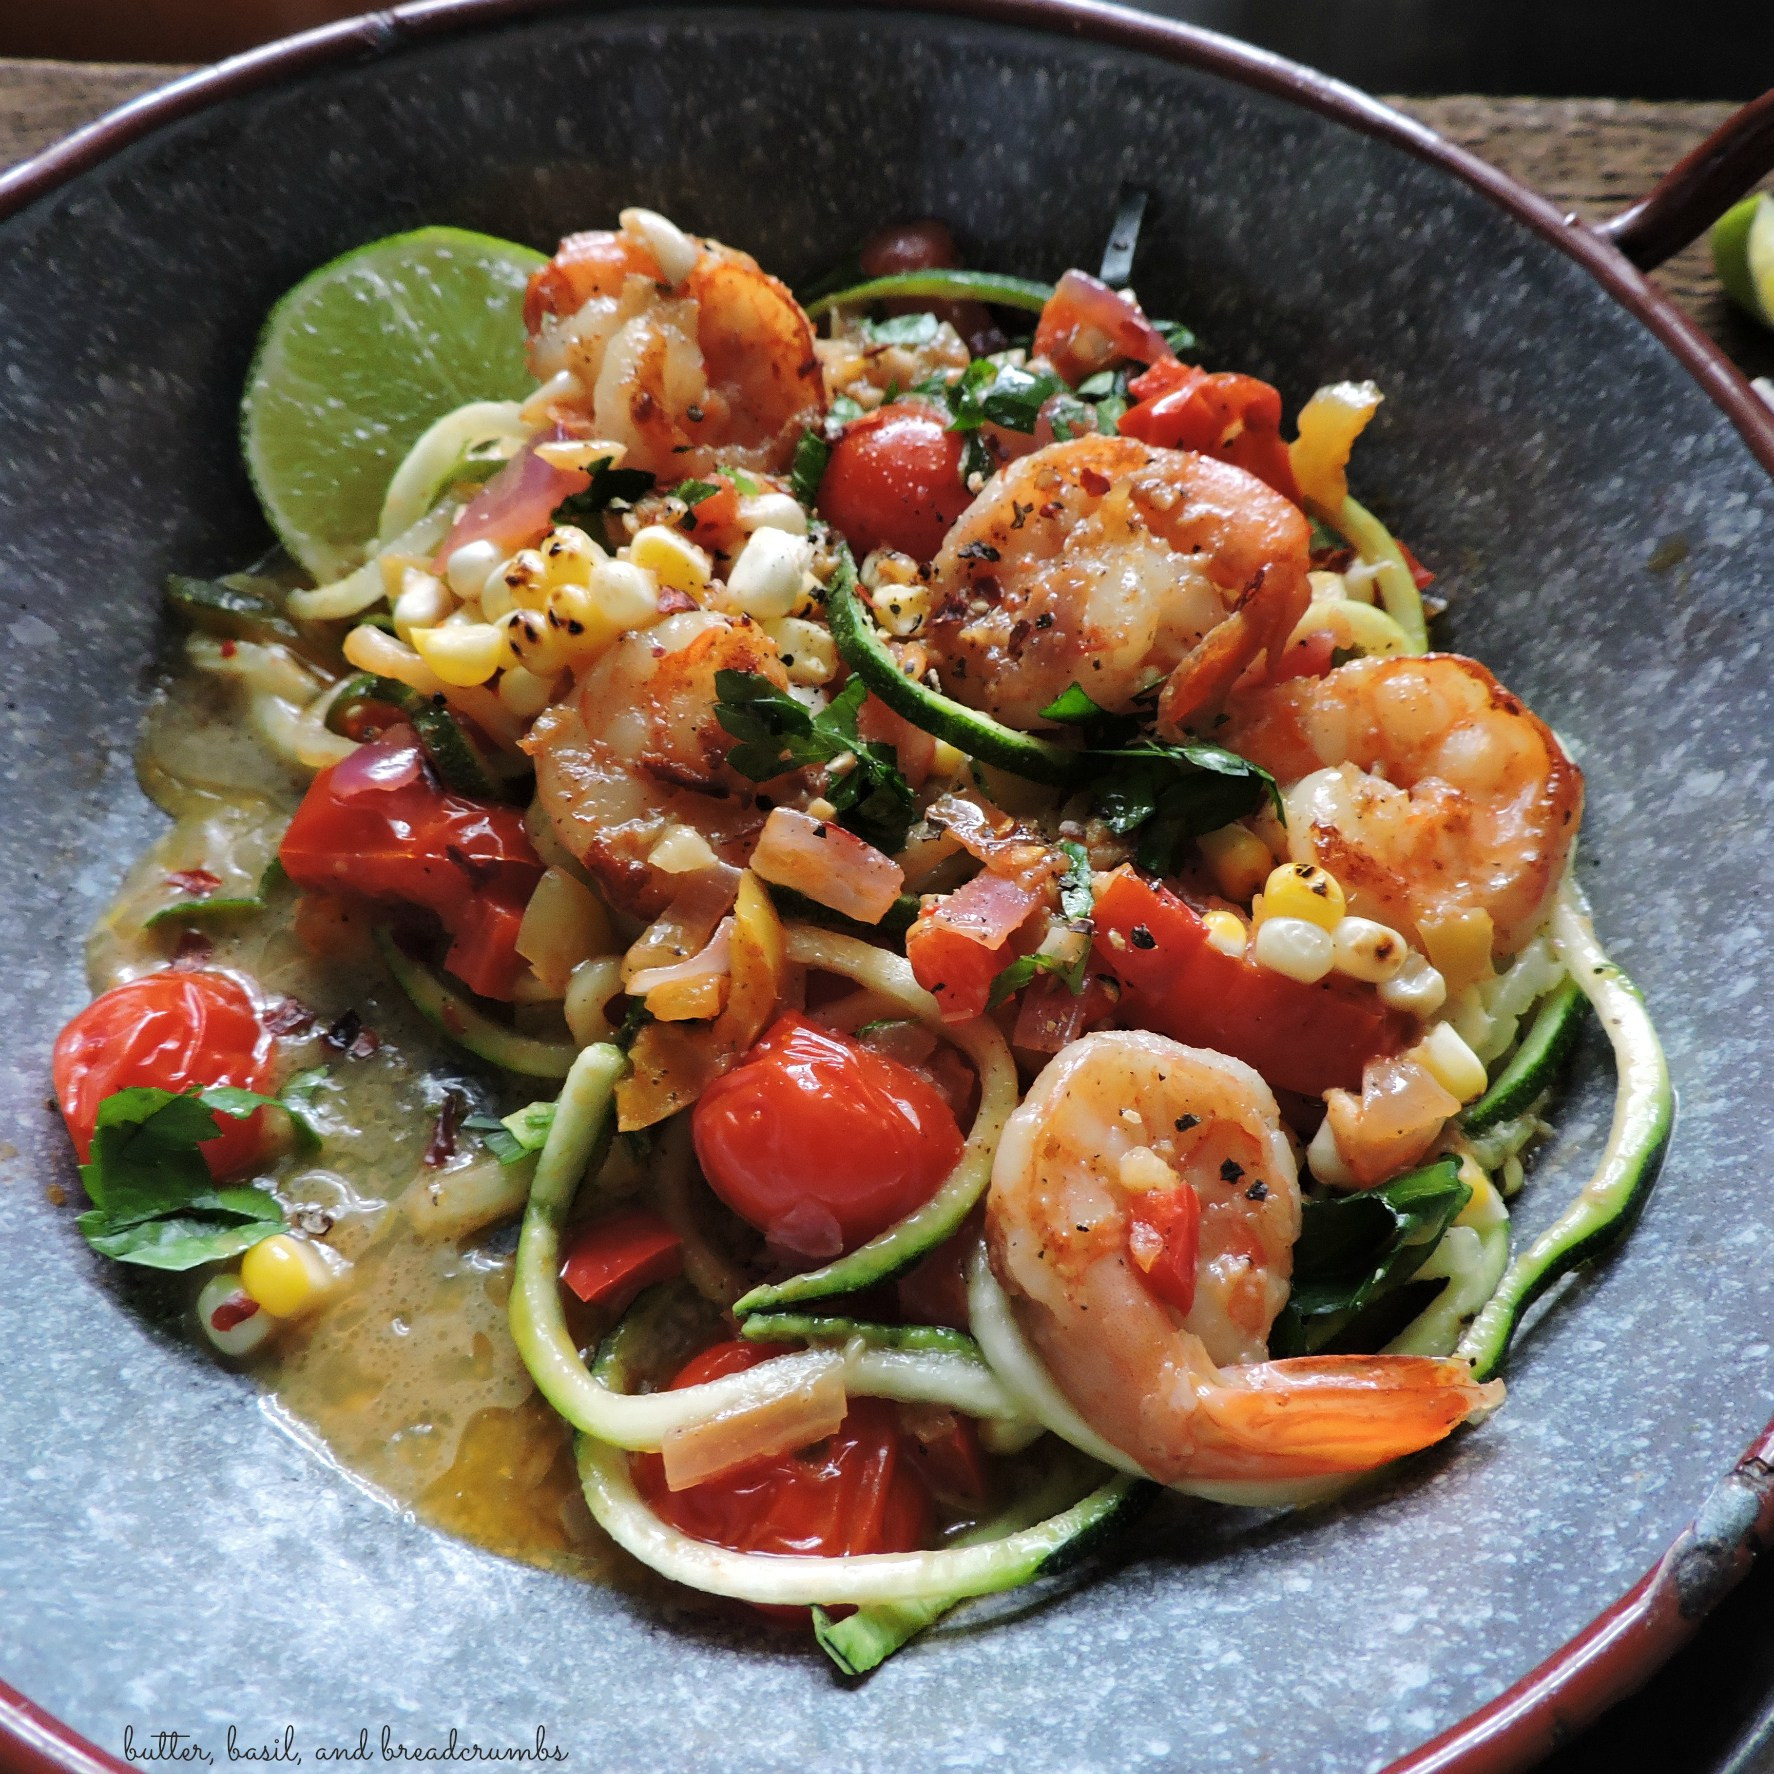 Shrimp And Zucchini  Spicy Shrimp and Zucchini Noodles Butter Basil and